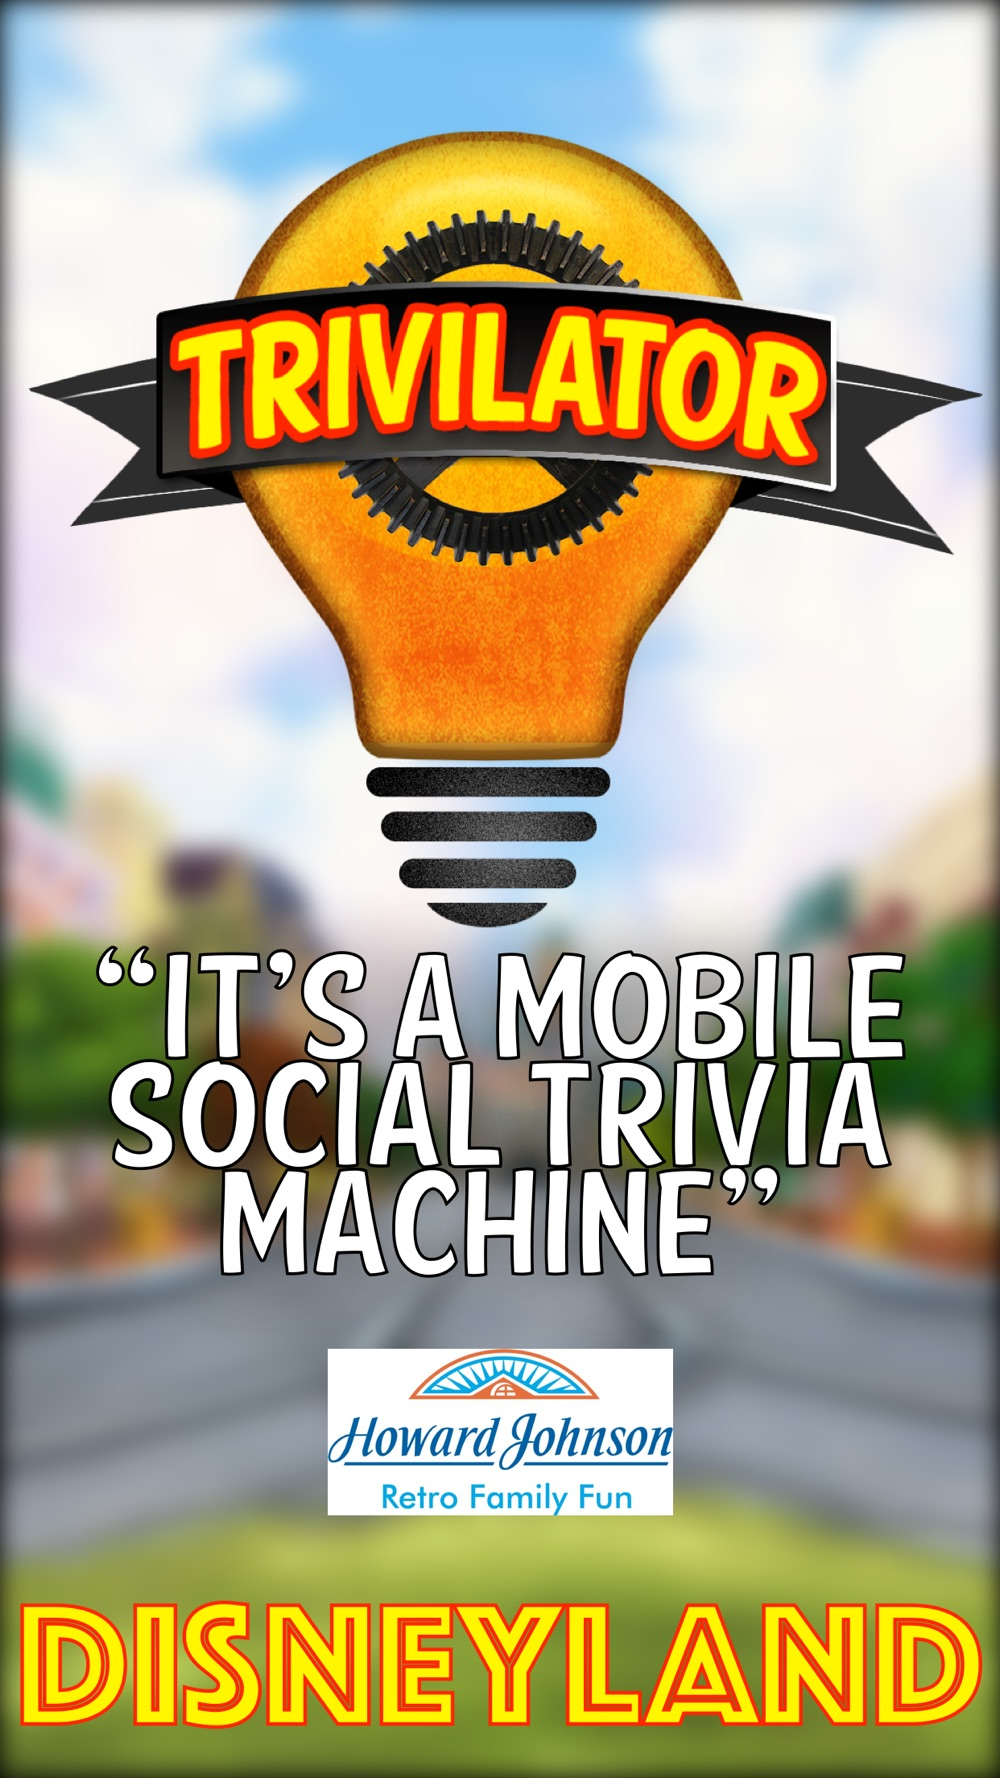 Disneyland Trivia TRIVILATOR Multi-Player Trivia Game by MouseWait Cheat Codes